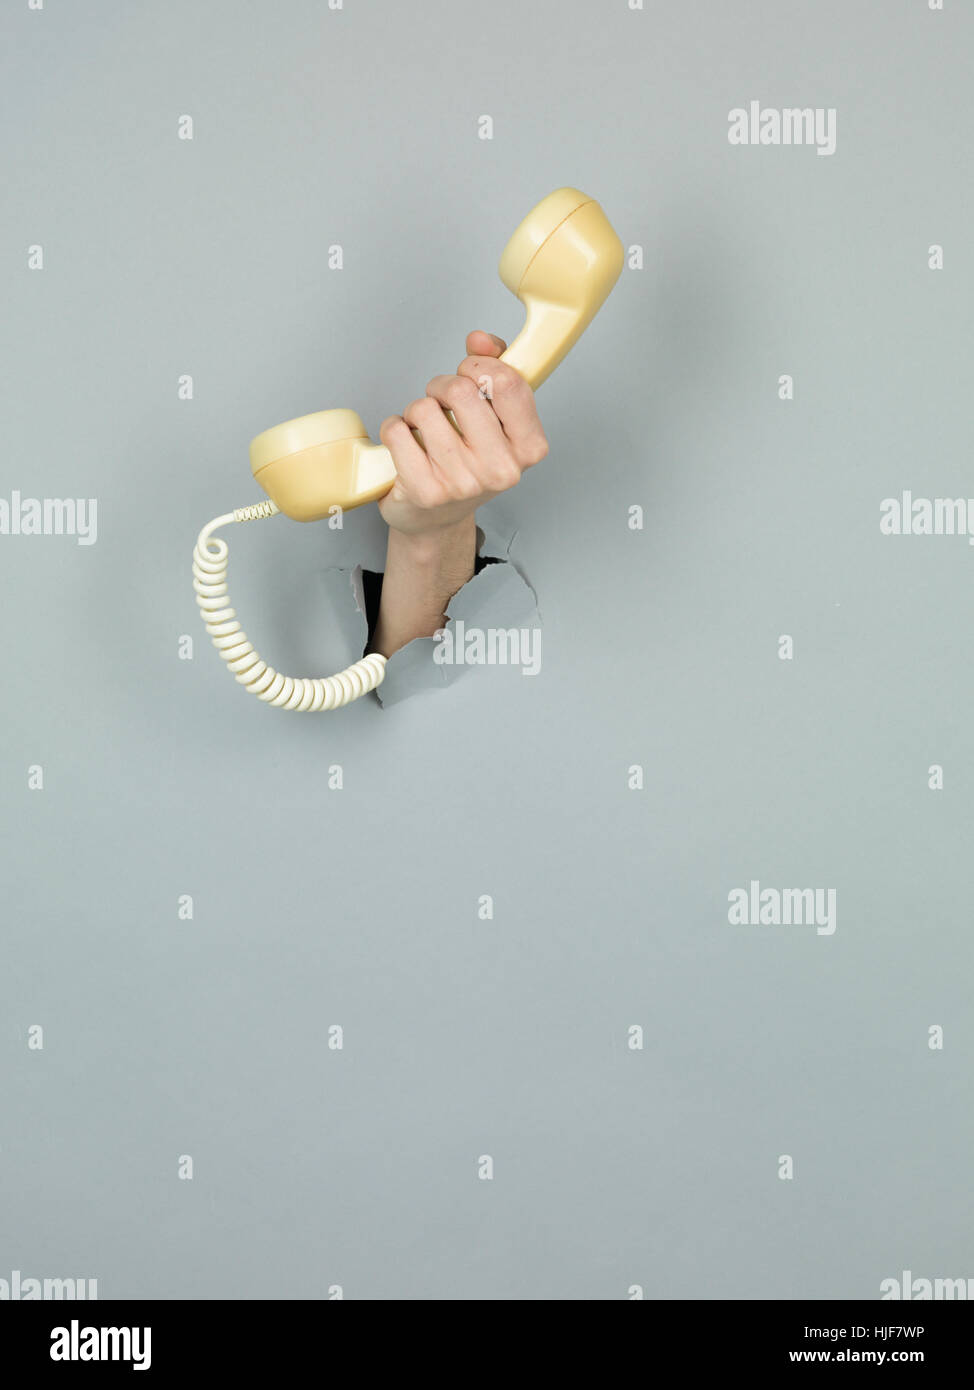 telephone, phone, call, finger, object, single, colour, model, design, project, Stock Photo